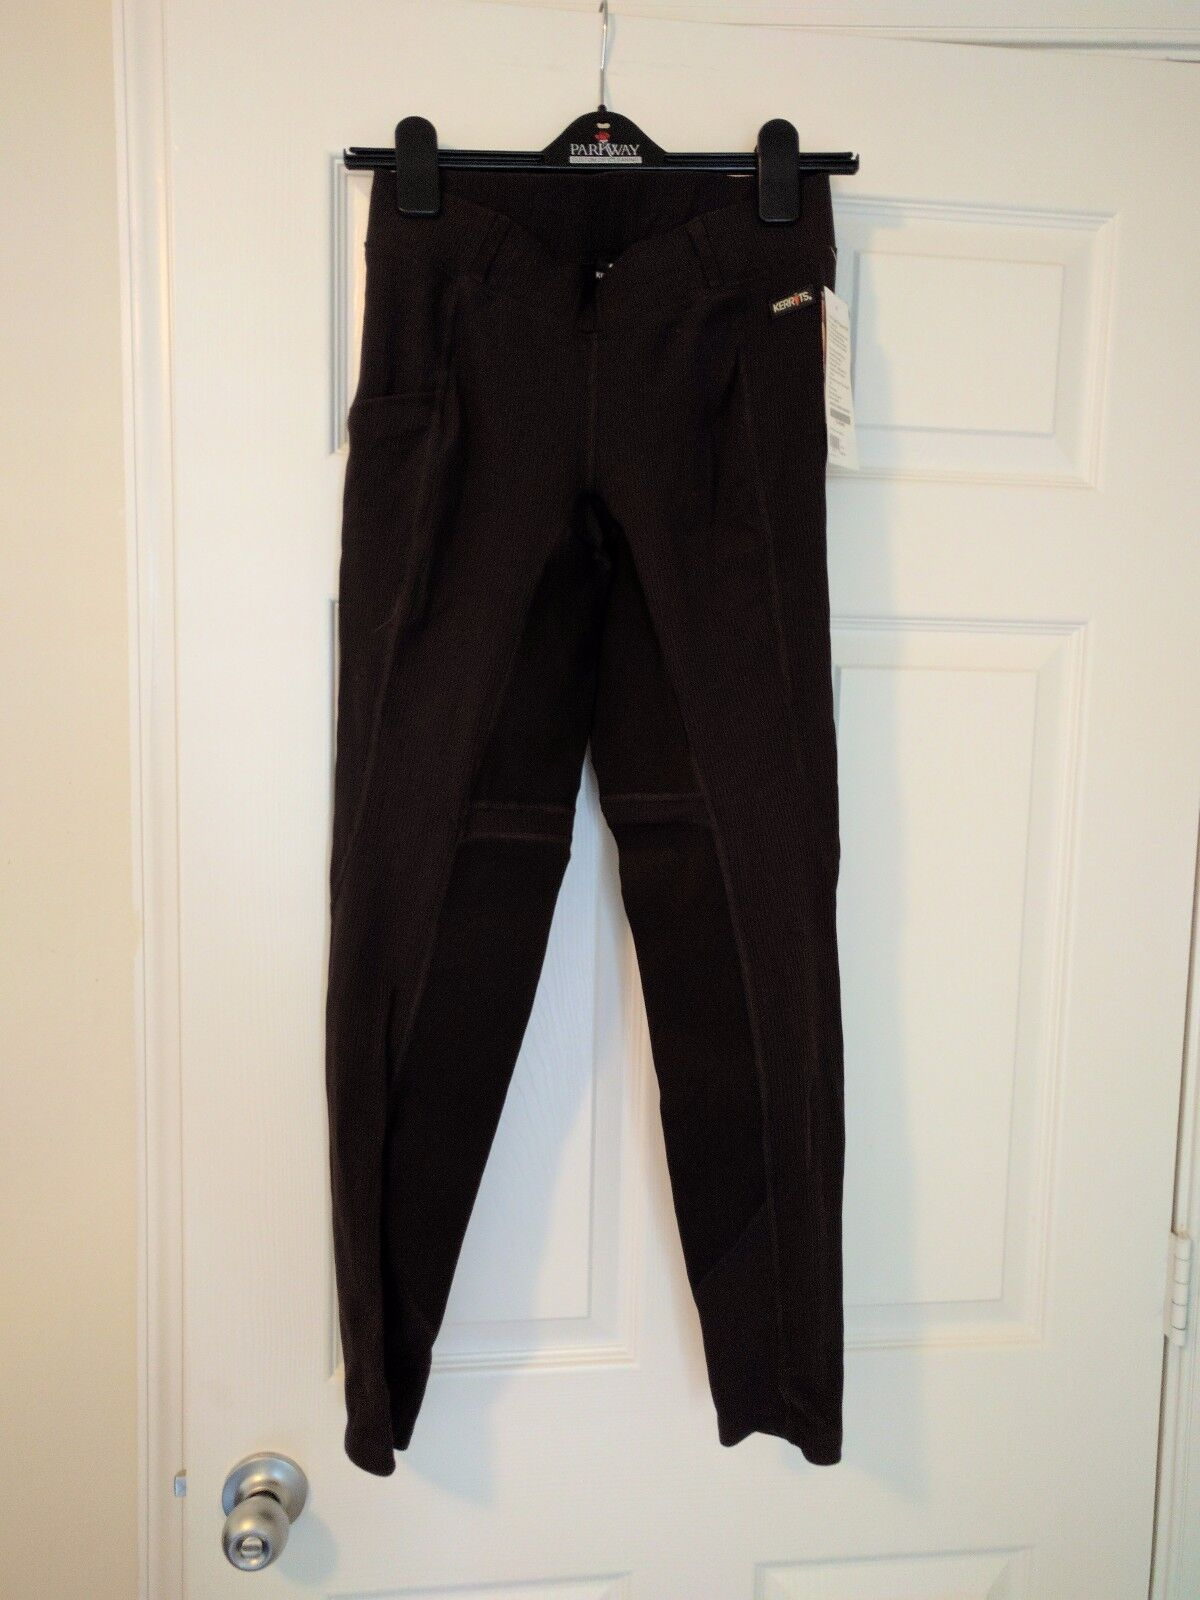 Kerrits  Breathe II Channel Rib breeches, medium, bridle brown, new with tags  global distribution